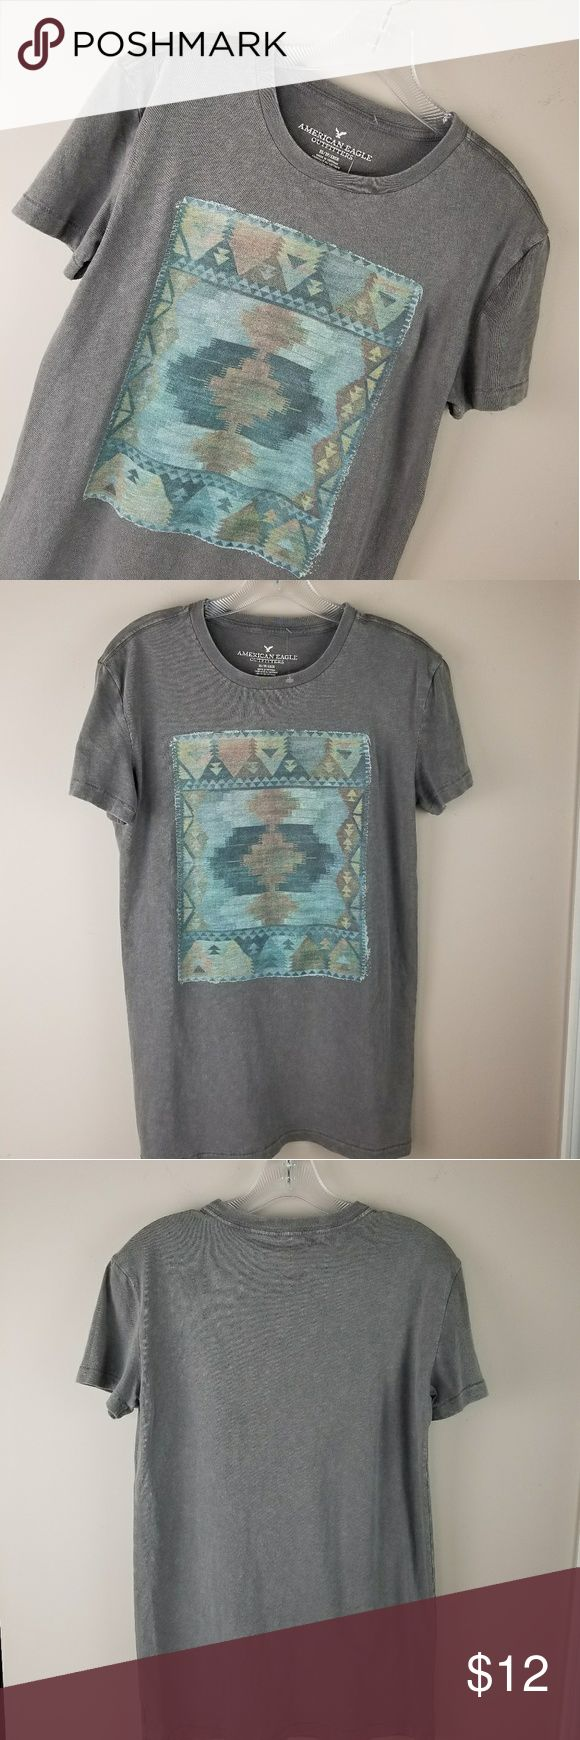 NWOT. AMERICAN EAGLE Aztec Printed T-shirt! NWOT. This gray printed T-shirt offers a distressed modern look! Pair with skinny jeans and booties and you're ready for a casual night out! Size XS. Looks generously cut for size. Please see Measurement & fabric content photos above. American Eagle Outfitters Tops Tees - Short Sleeve